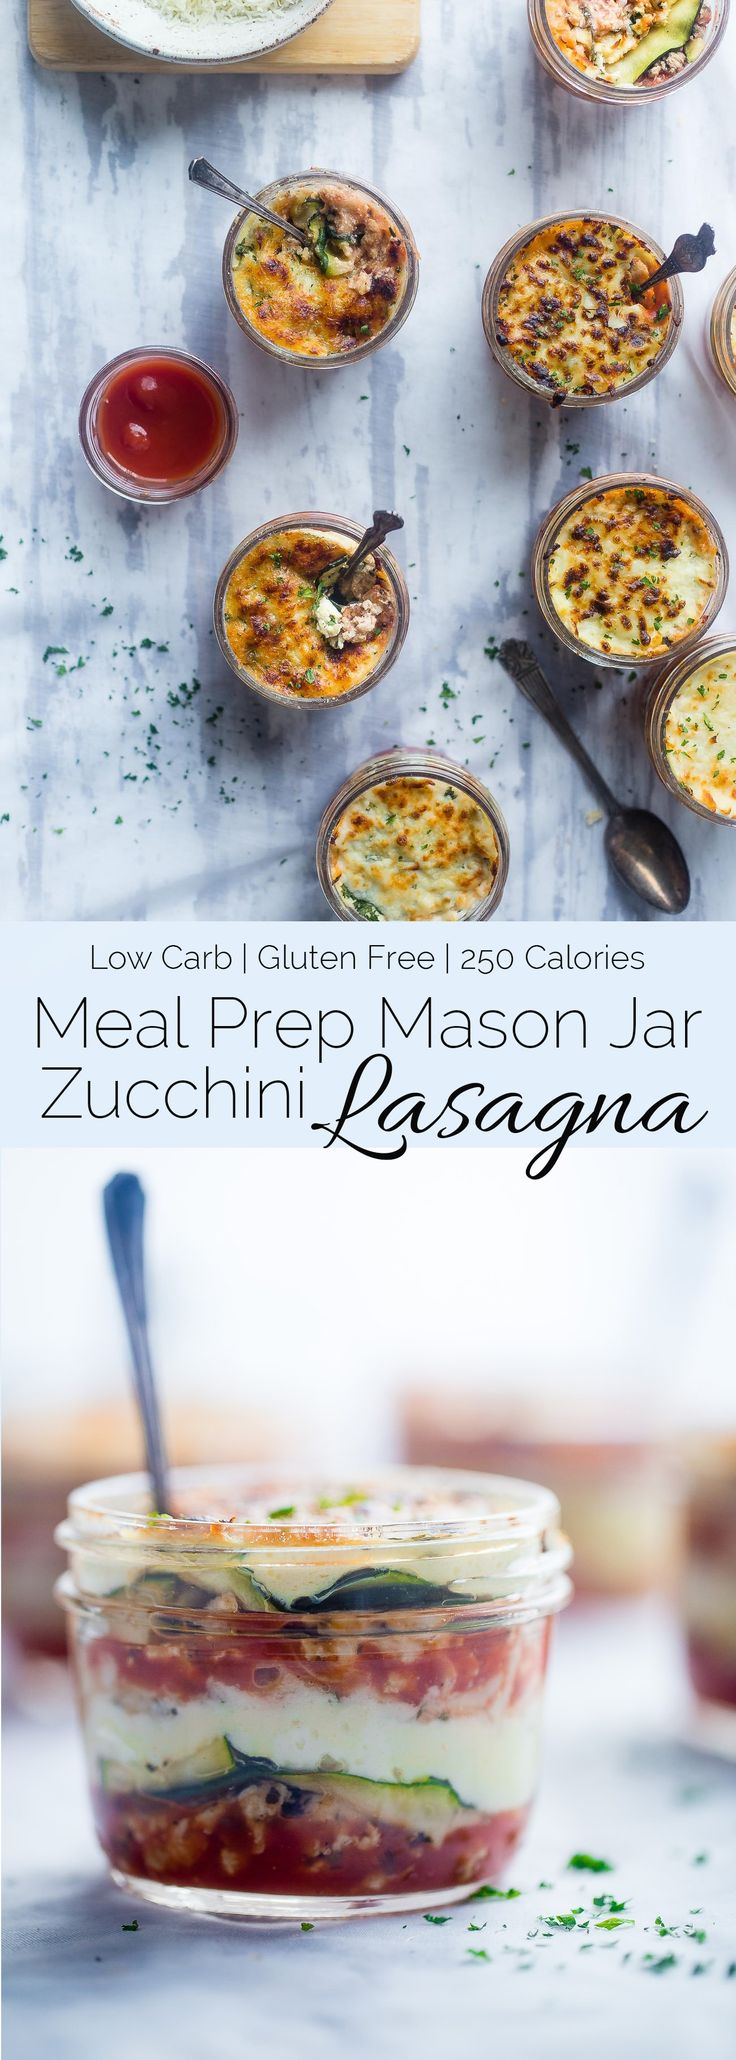 Mason Jar Zucchini Lasagna - The perfect, portable healthy meal that's great for meal prep! They're low carb, gluten free, packed with protein and only 250 calories! | Foodfaithfitness.com | @FoodFaithFit